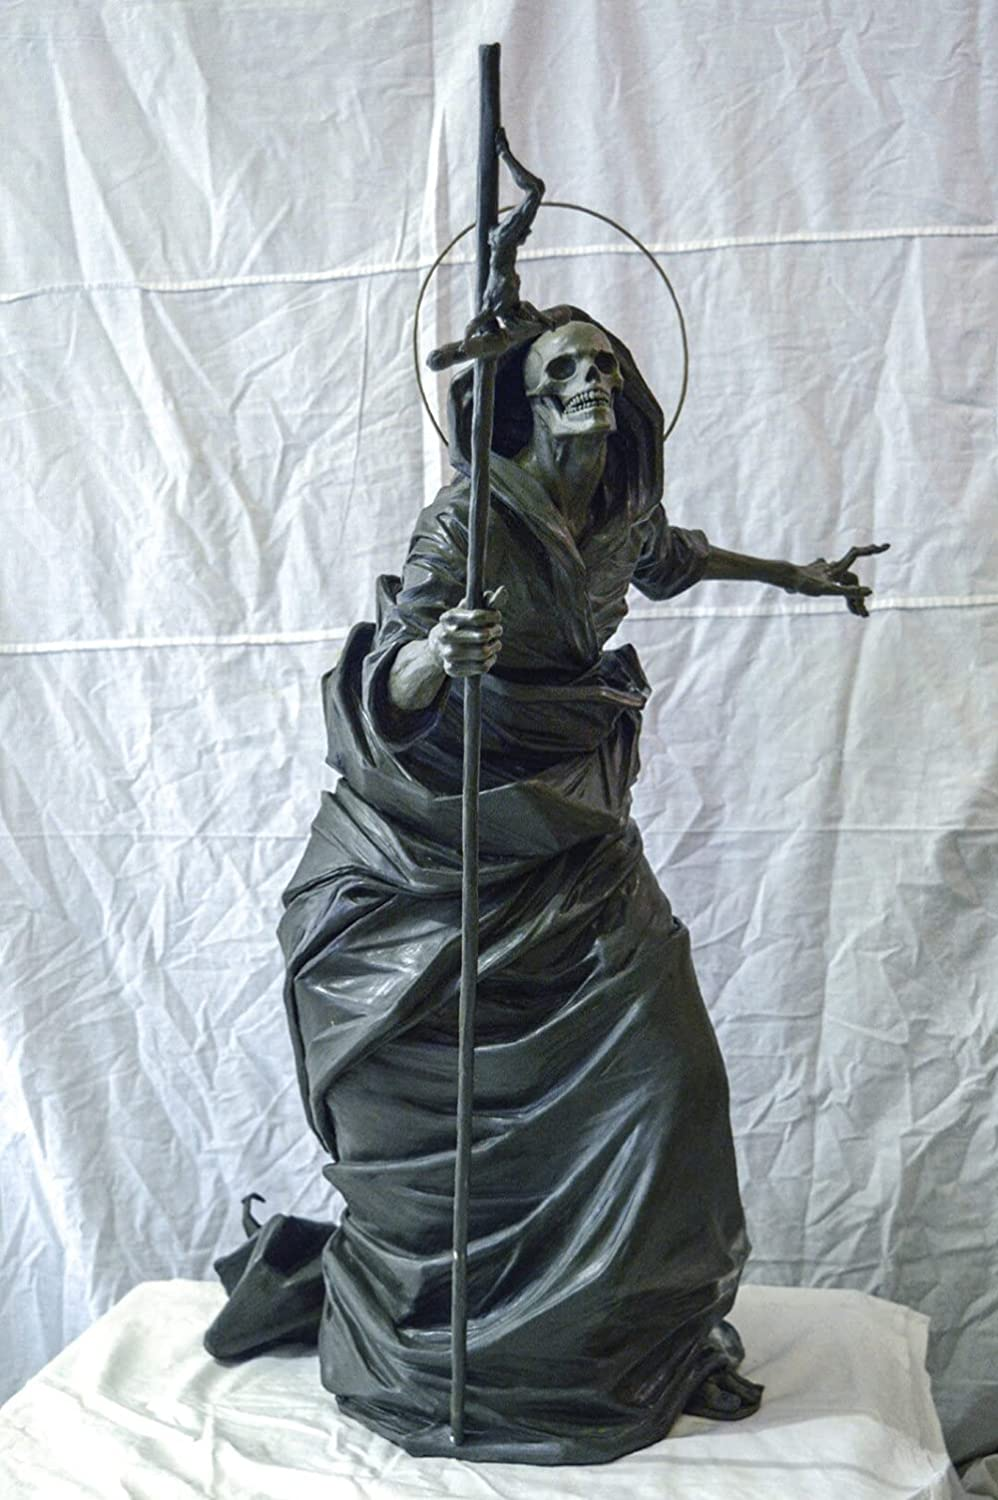 Black Skeleton Guardian Sculpture Cheap super special price Now free shipping Gothic Rea Statue Yard Decor